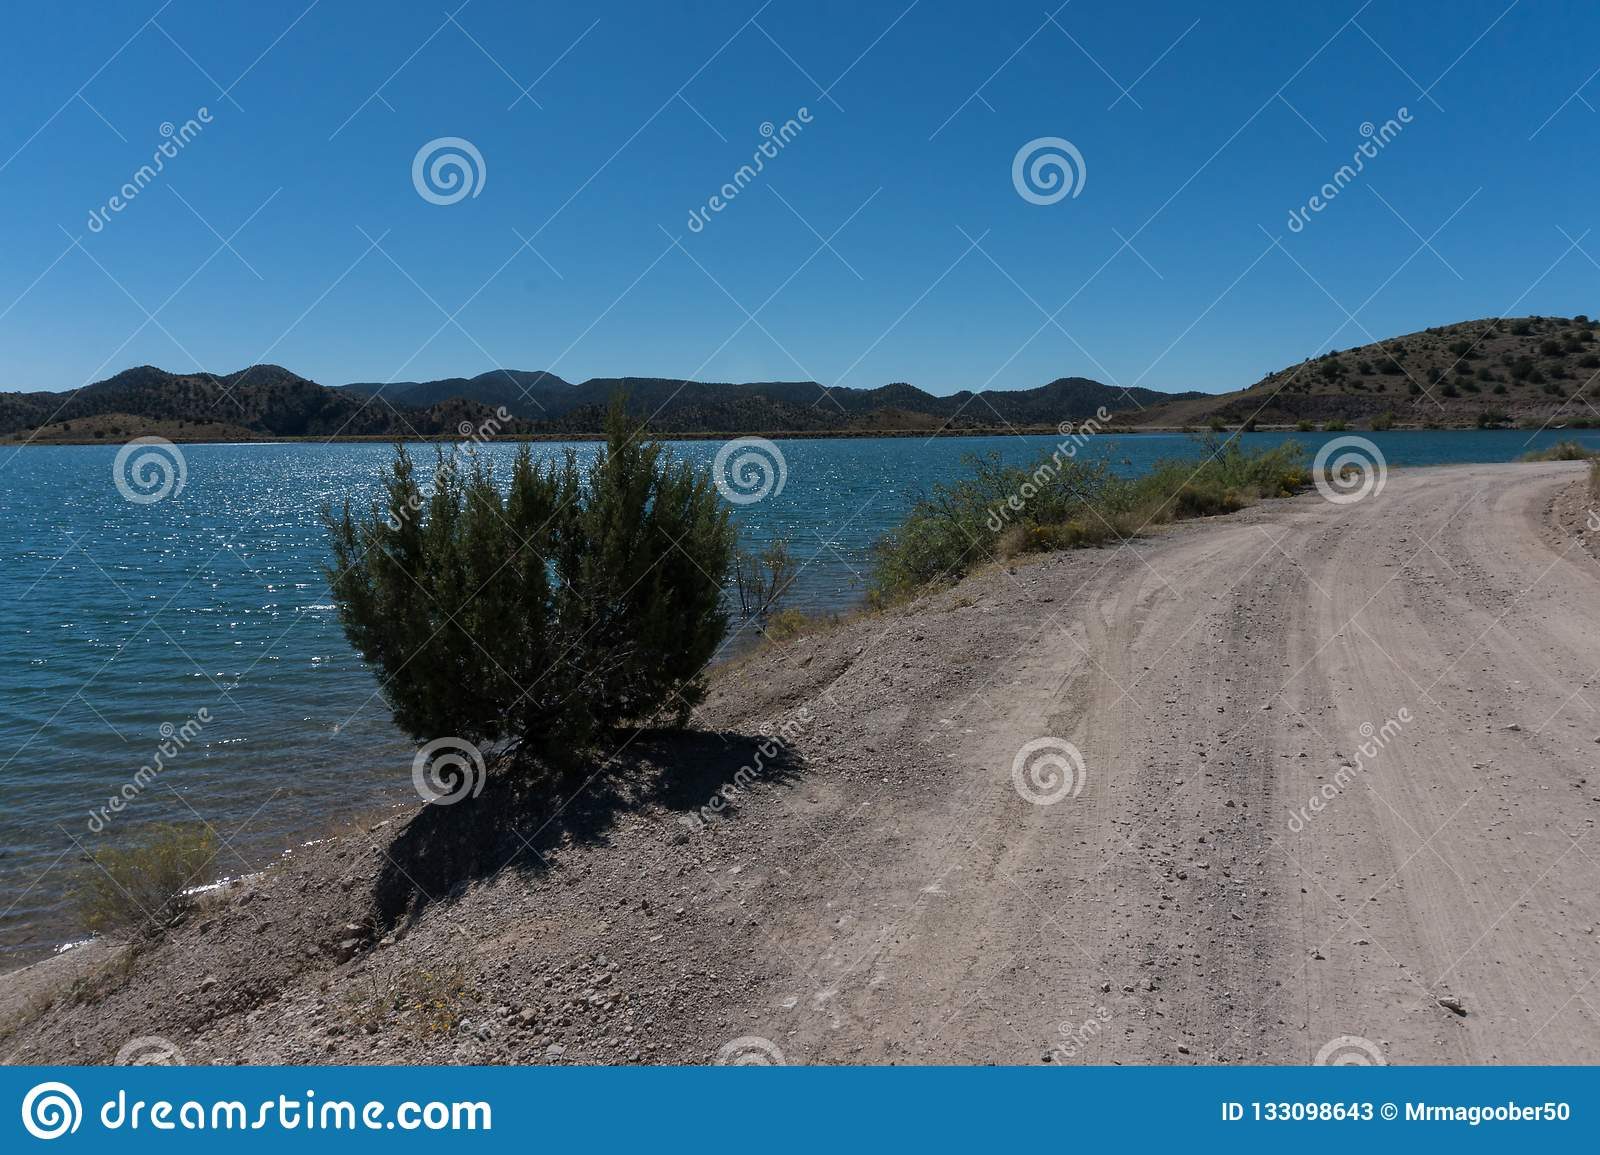 View of Bill Evans Lake roadway near Silver City in New Mexico.